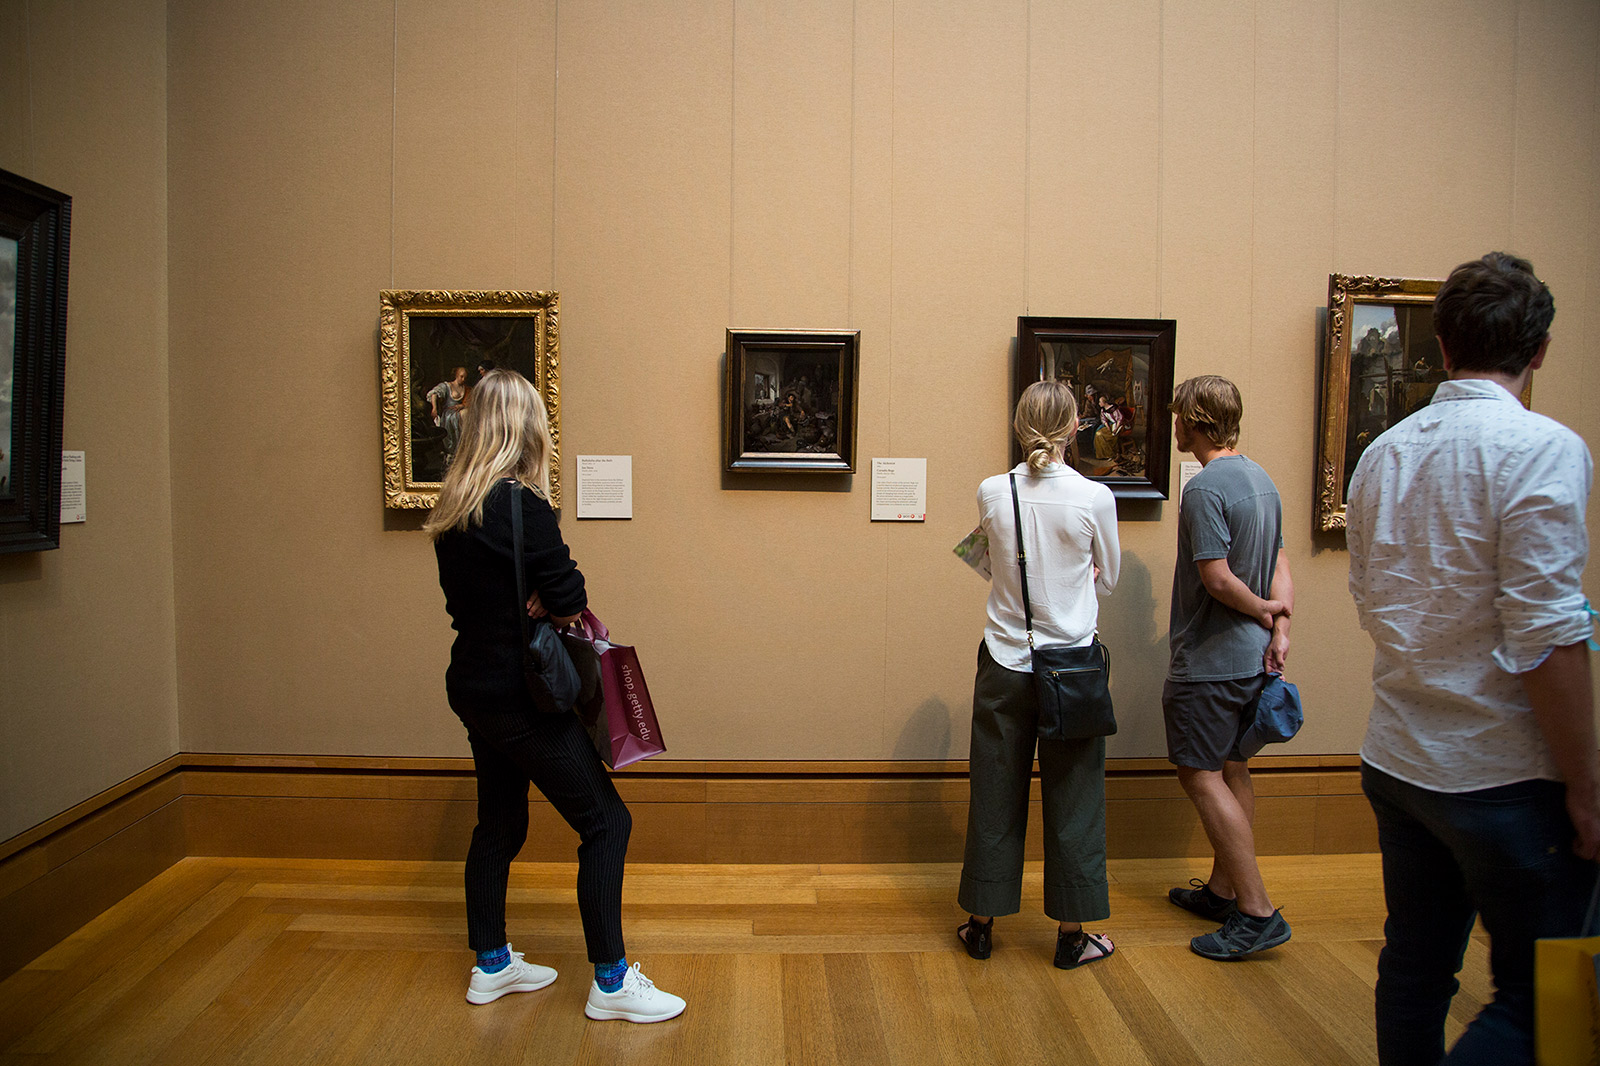 Four people in a museum gallery look at small, darkly colored paintings by Dutch artists arrayed on a wall